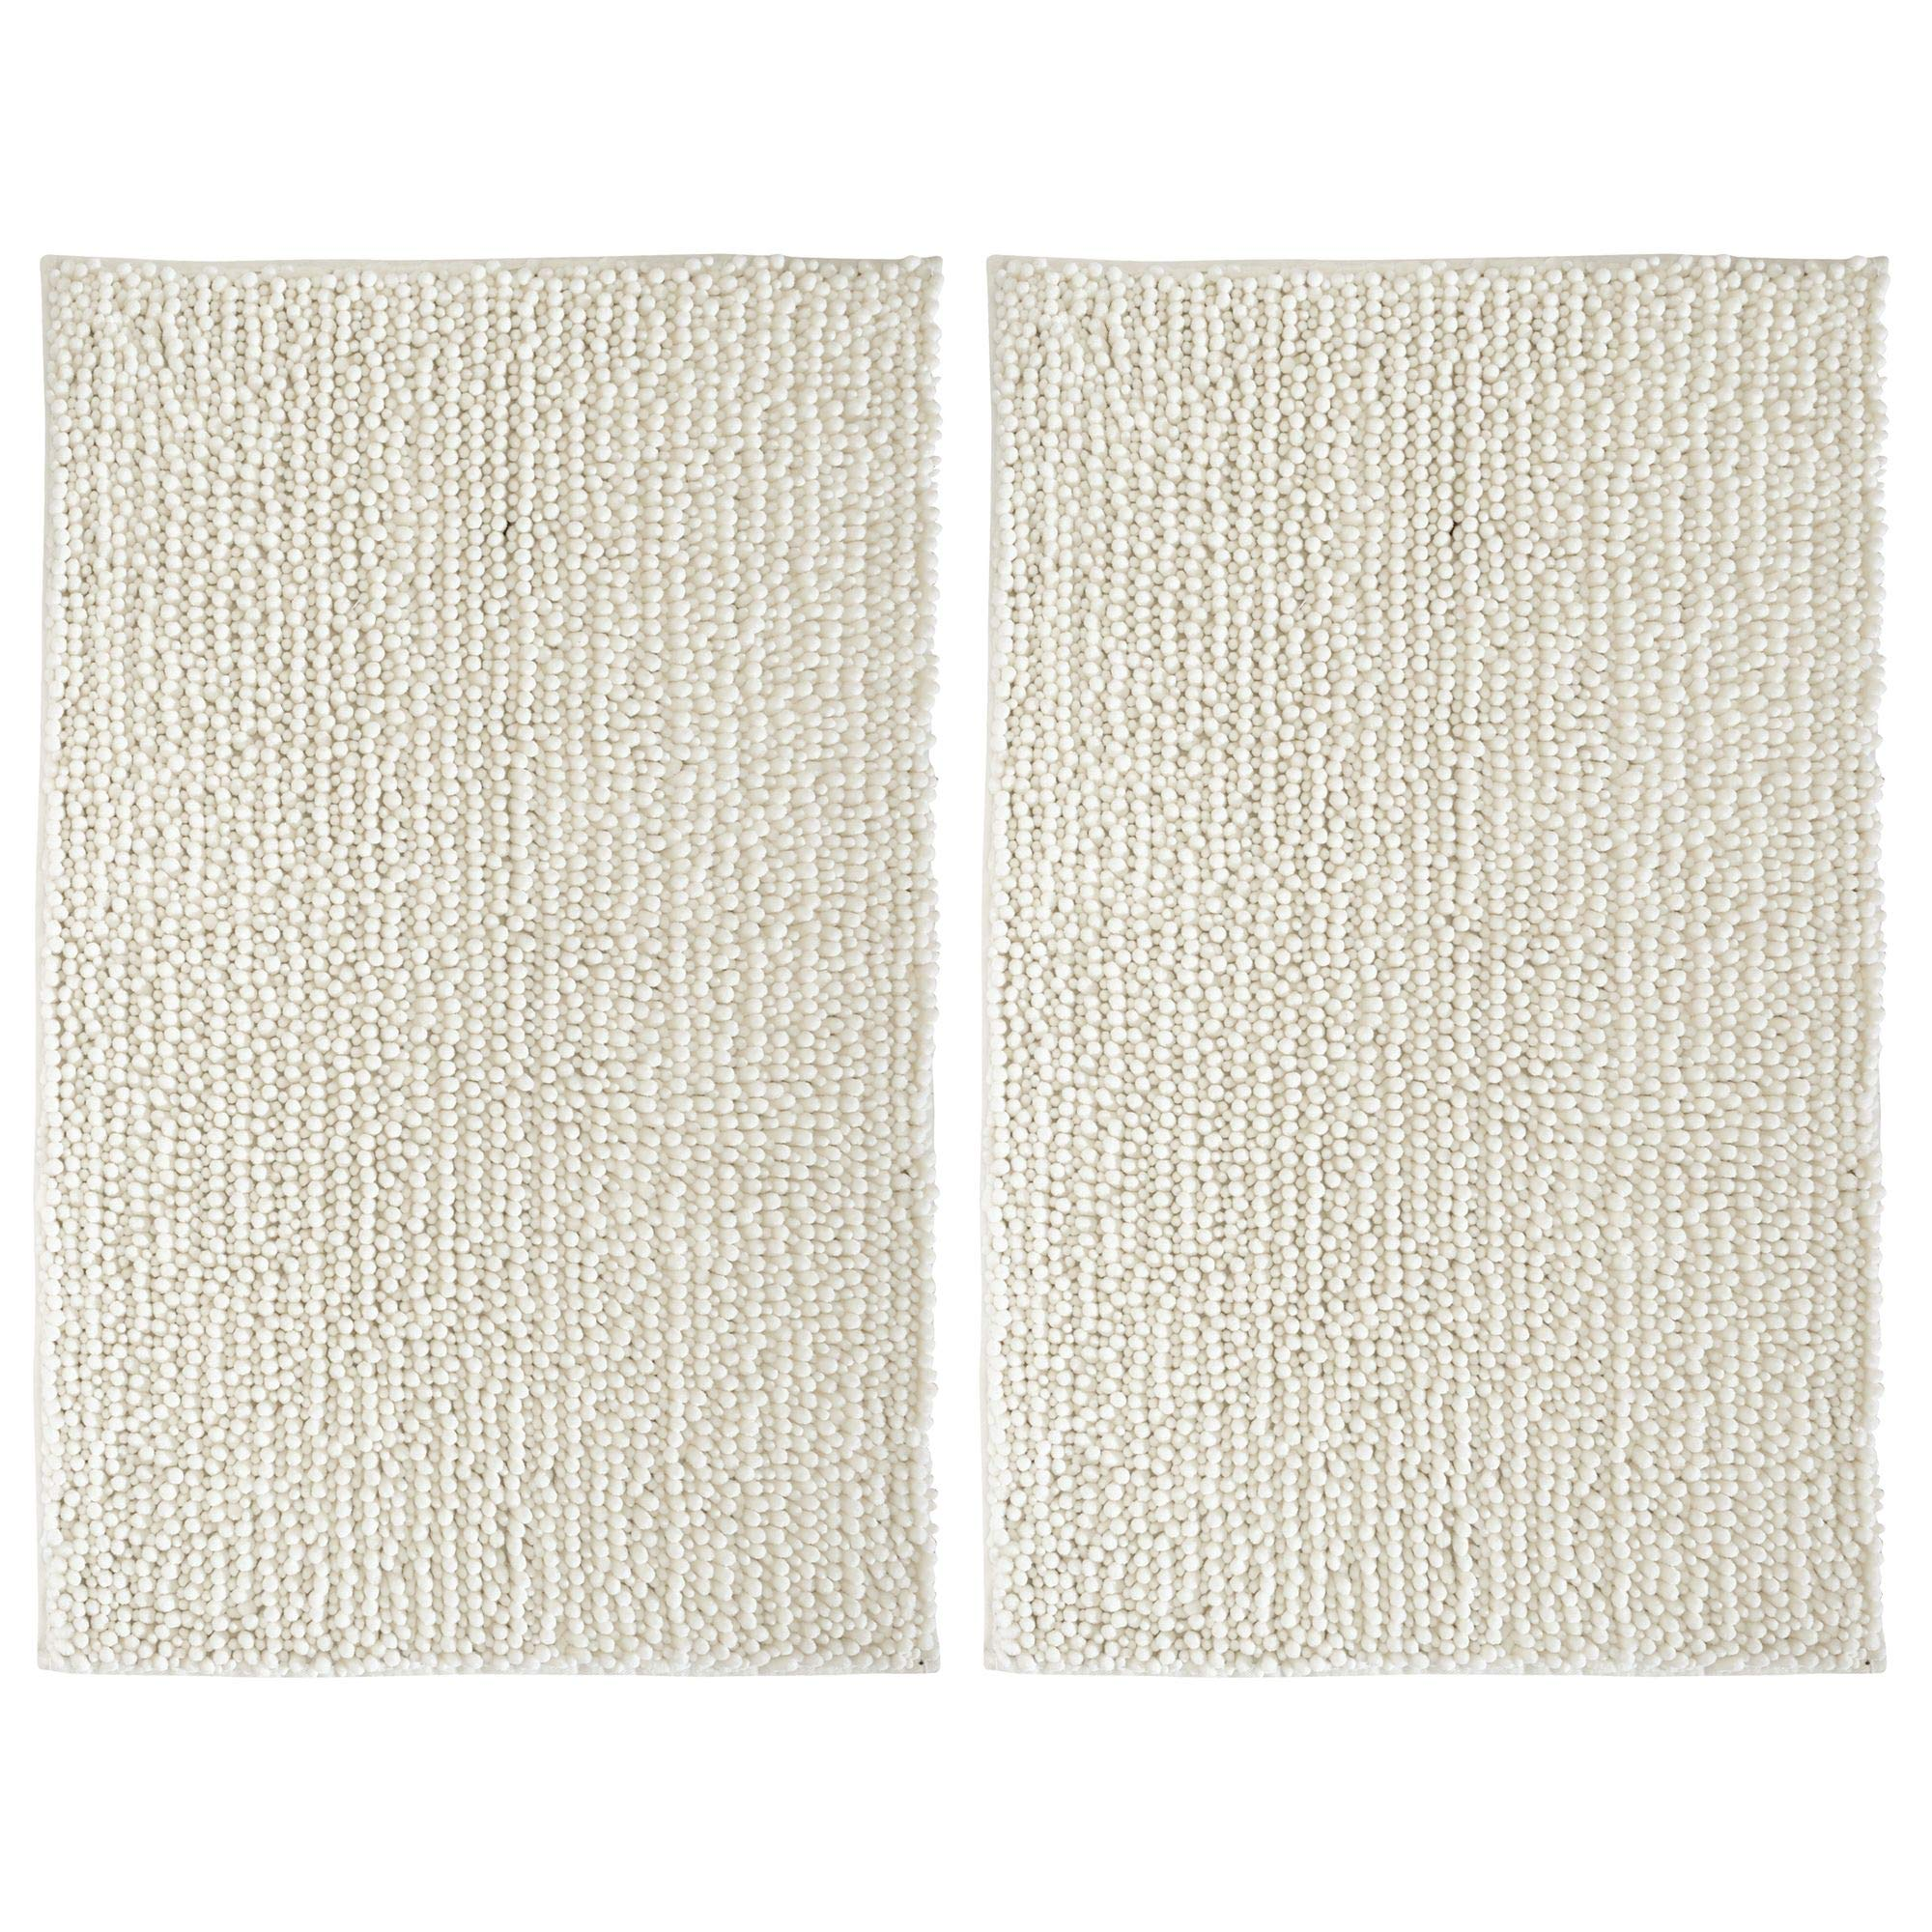 mDesign Soft Microfiber Polyester Non-Slip Rectangular Spa Mat, Plush Water Absorbent Accent Rug for Bathroom Vanity, Bathtub/Shower, Machine Washable - 30'' x 20'' - Pack of 2, Ivory